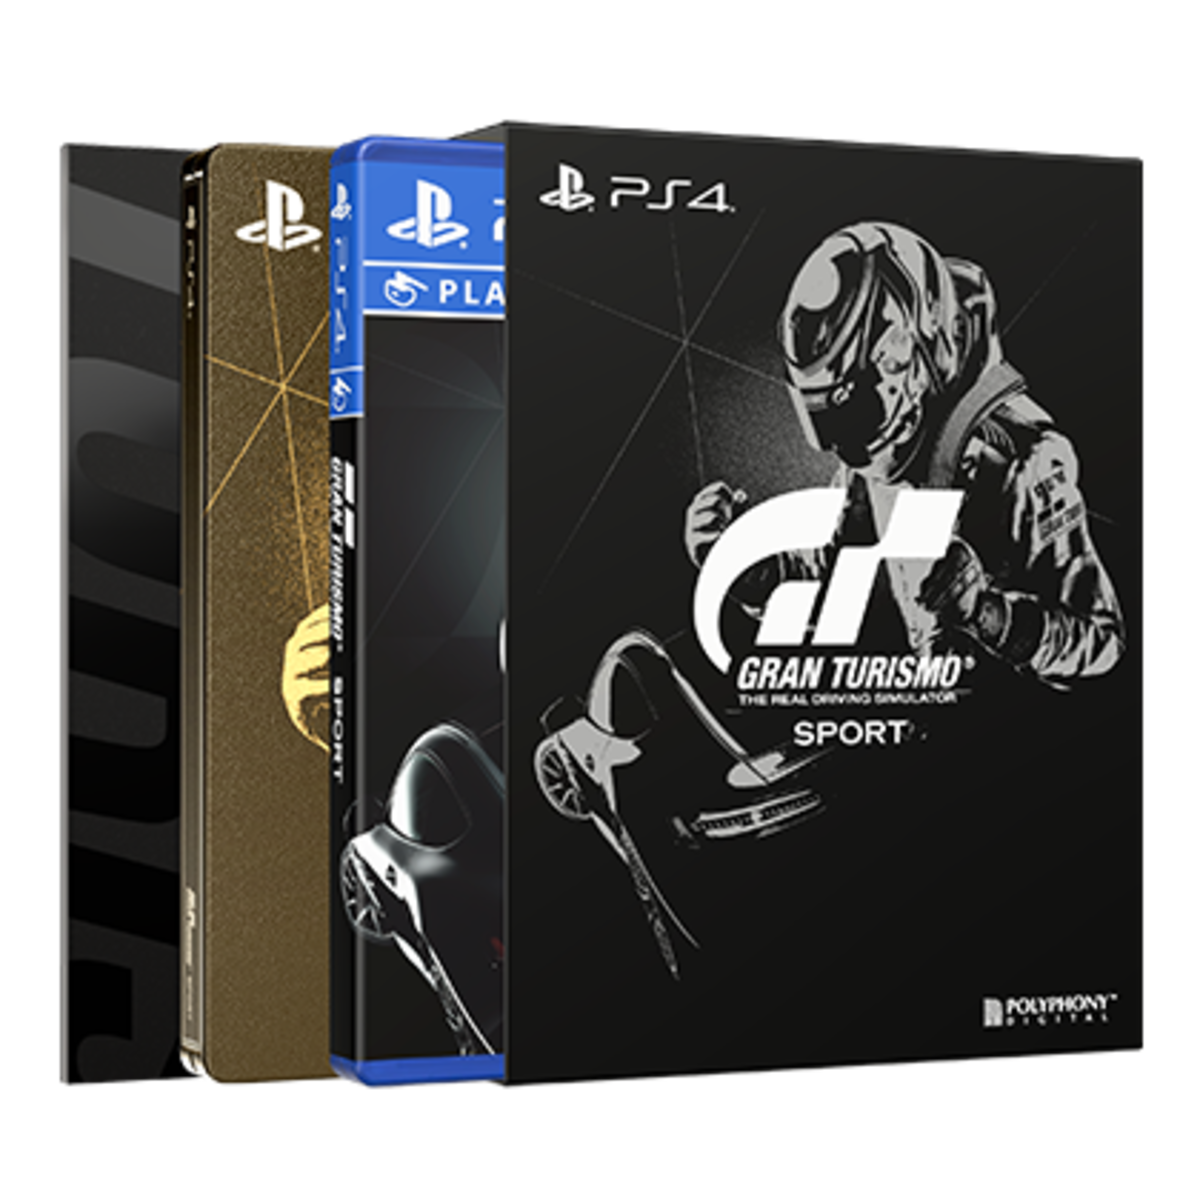 GRAN TURISMO SPORT PS4 AS LIMITED EDITION GT